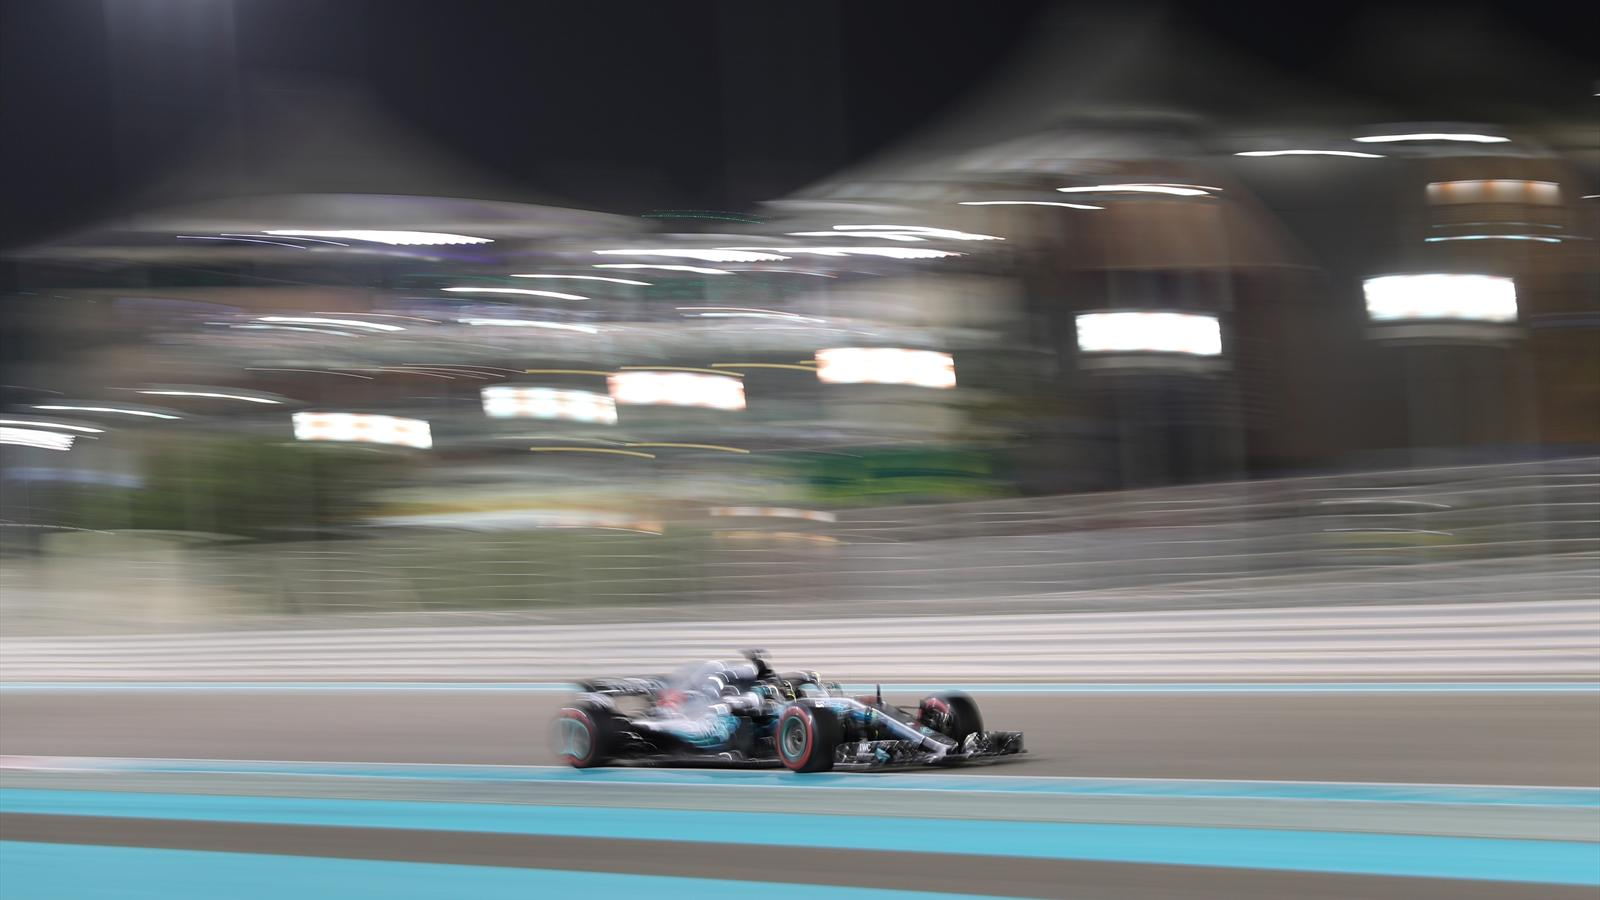 Fernando Alonso F1 Grand Prix Abu Dhabi Grand Prix Lewis Hamilton Ends Season In Style